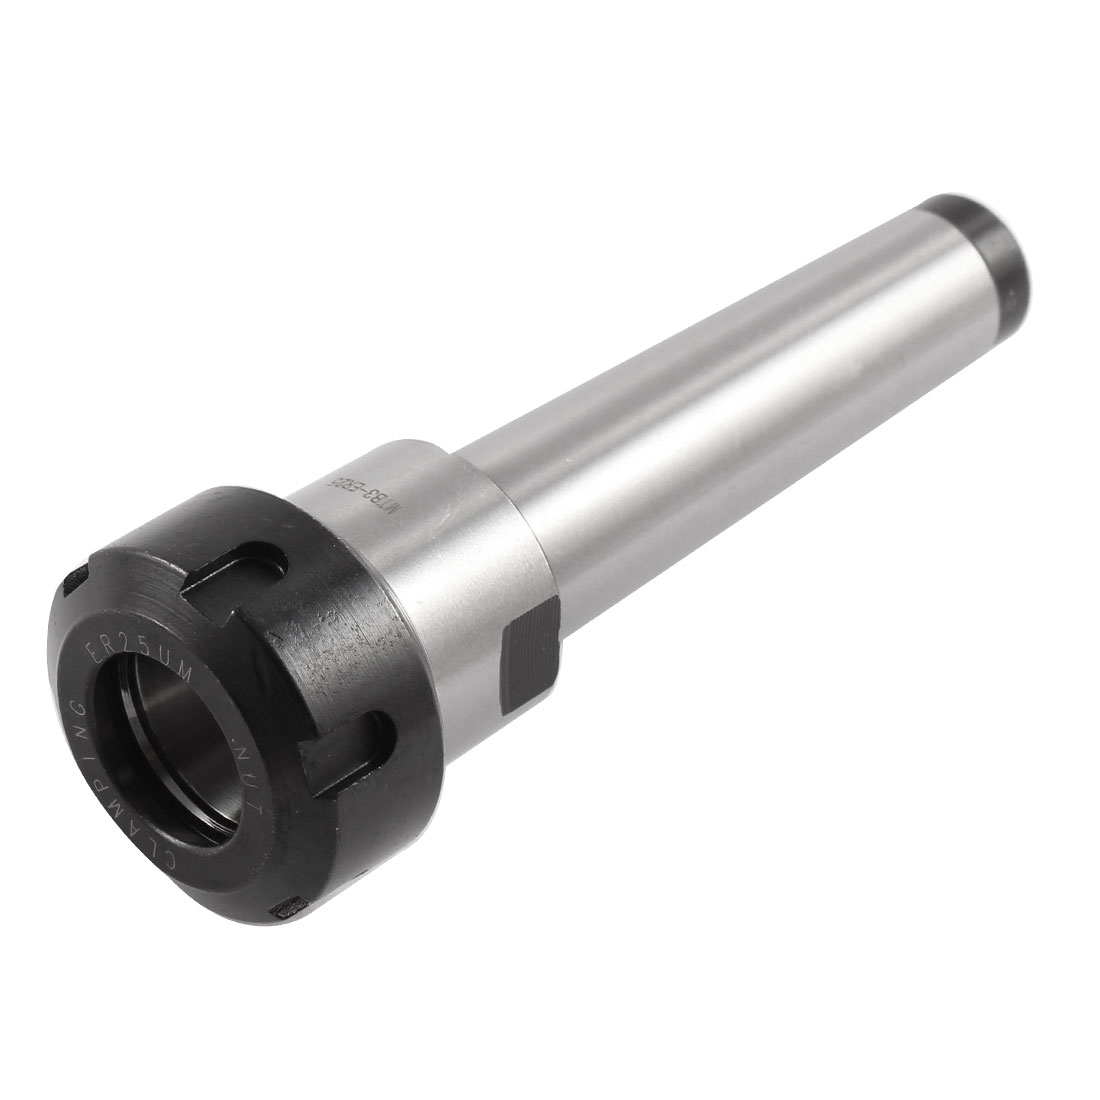 Collet Chuck Holder Straight Shank CNC Milling Rod Toolholder MTB3-ER25